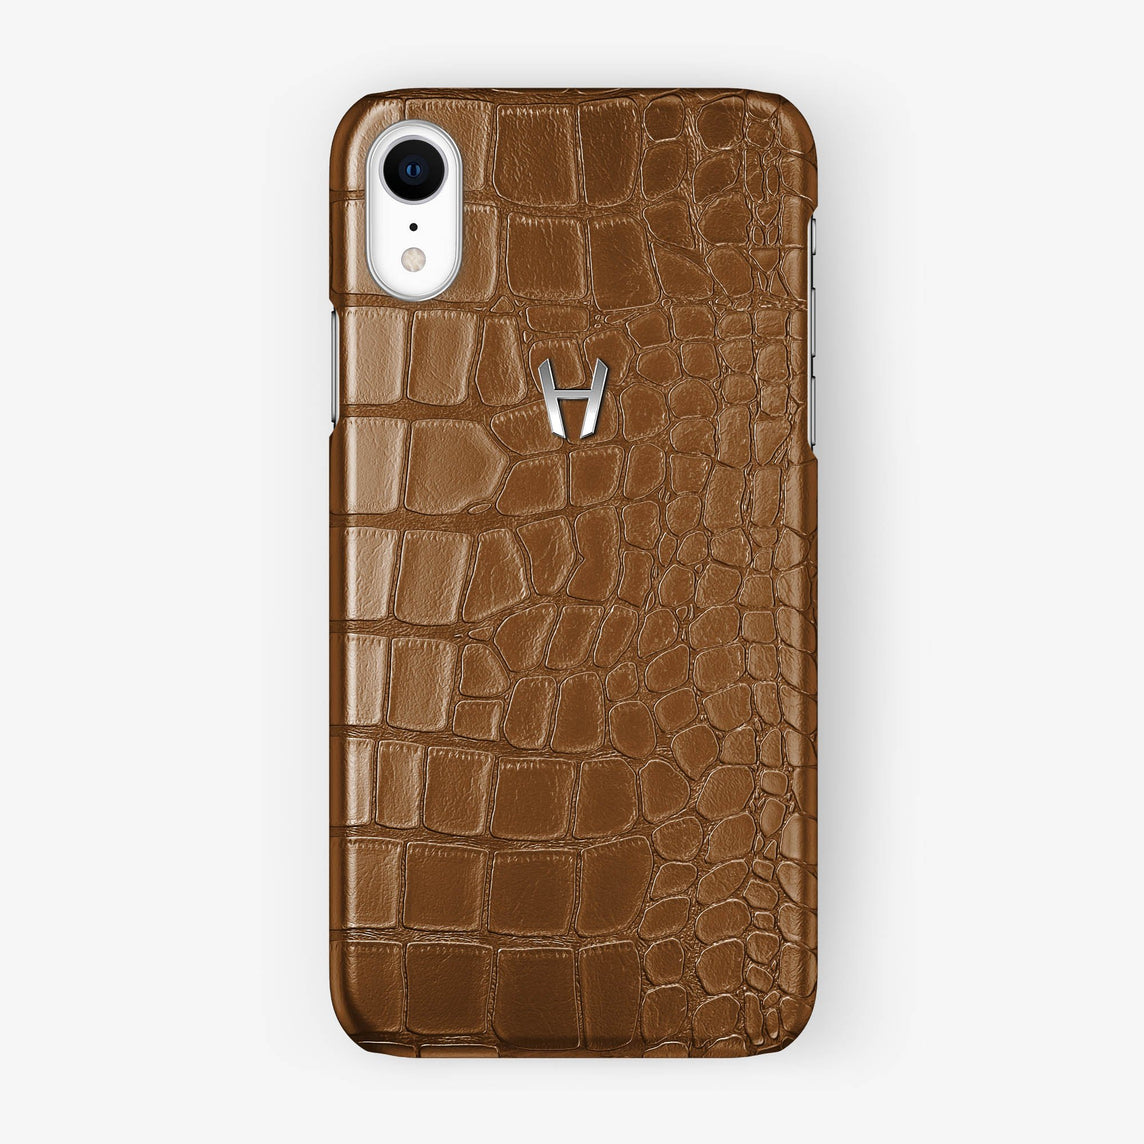 Alligator [iPhone Case] [model:iphone-xr-case] [colour:cognac] [finishing:stainless-steel]